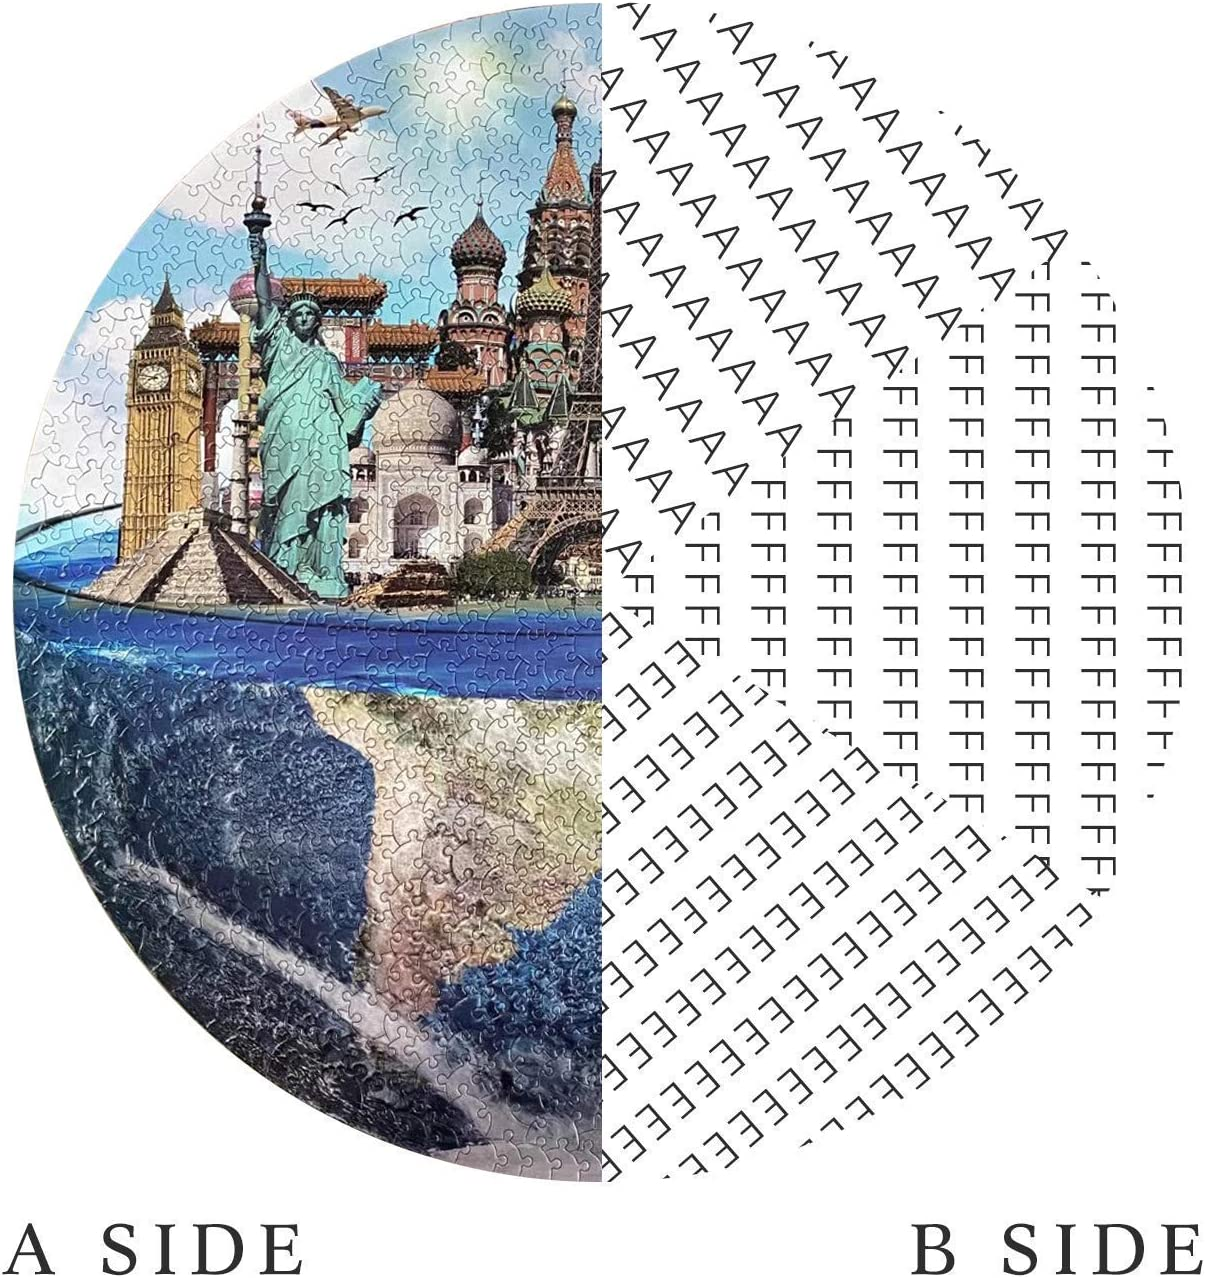 Gift for Adults and Kids,TNYGoods ZXCVBNM Scenic Landscape Round Puzzles for Adults and Couples Jigsaw Puzzles 1000 Pieces